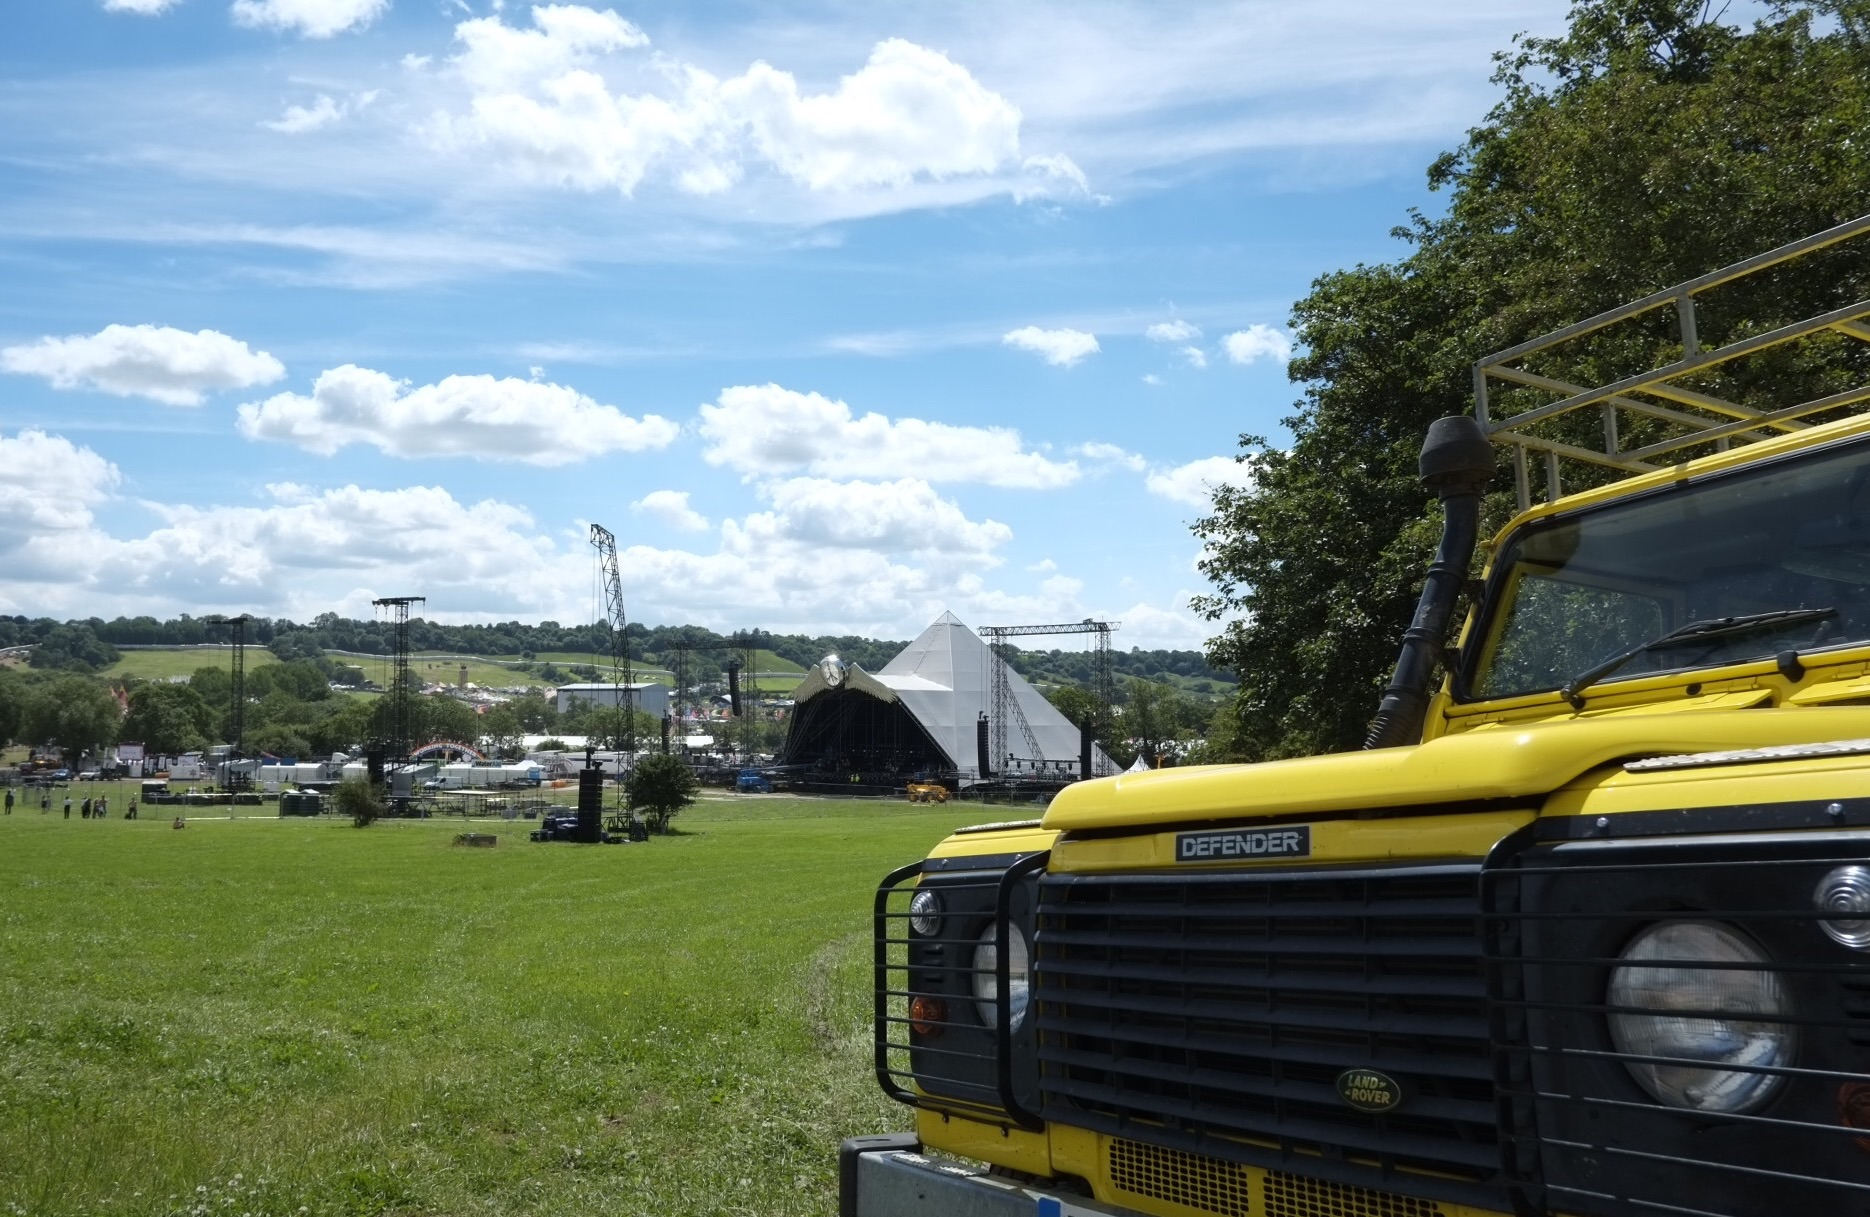 Landy and pyramid stage